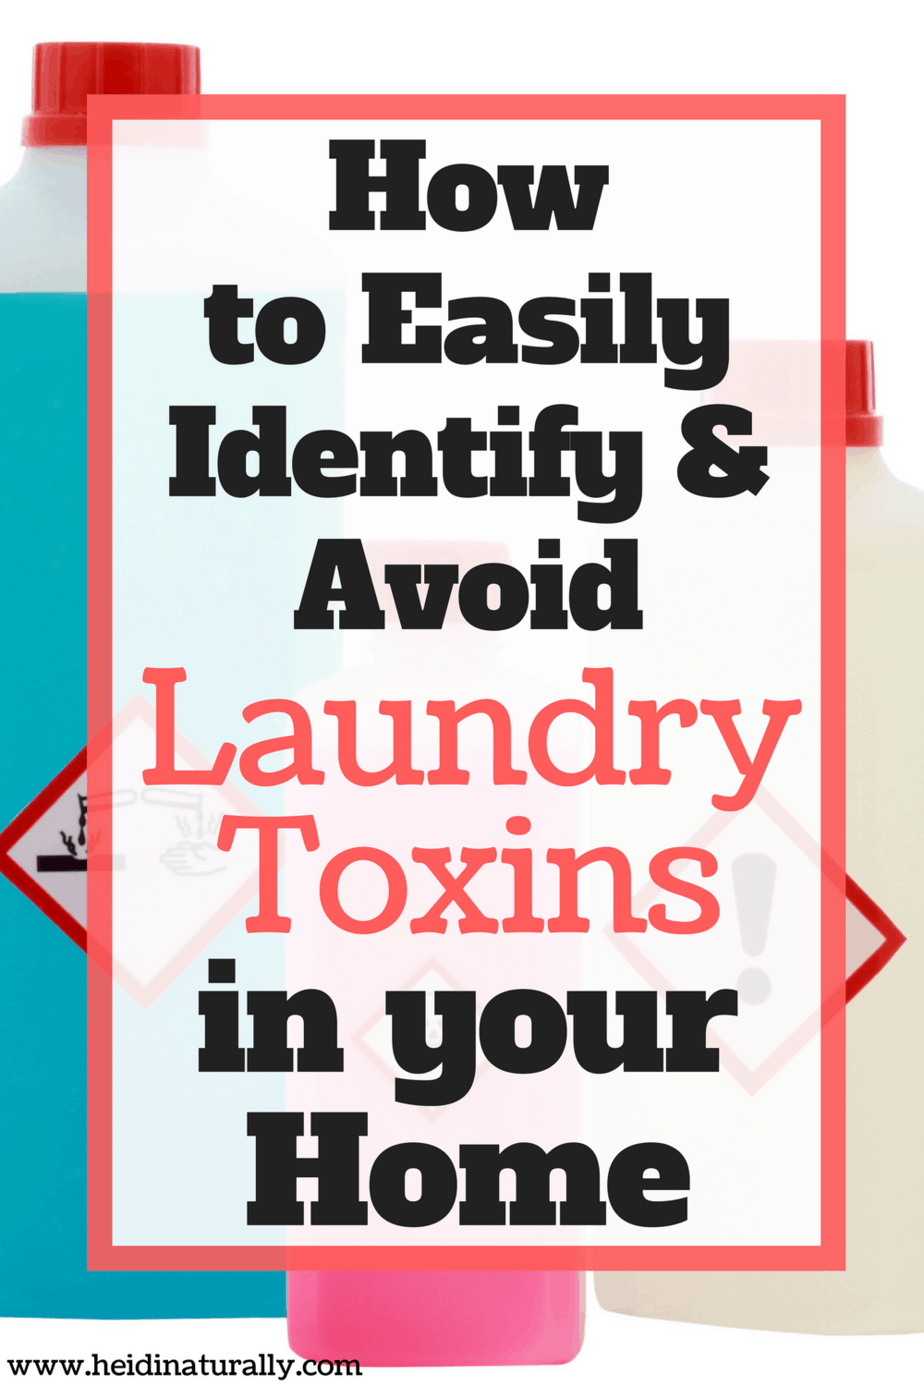 Find out how to avoid using laundry toxins that could be harmful to your family. Get the facts and learn what to use instead of chemicals.